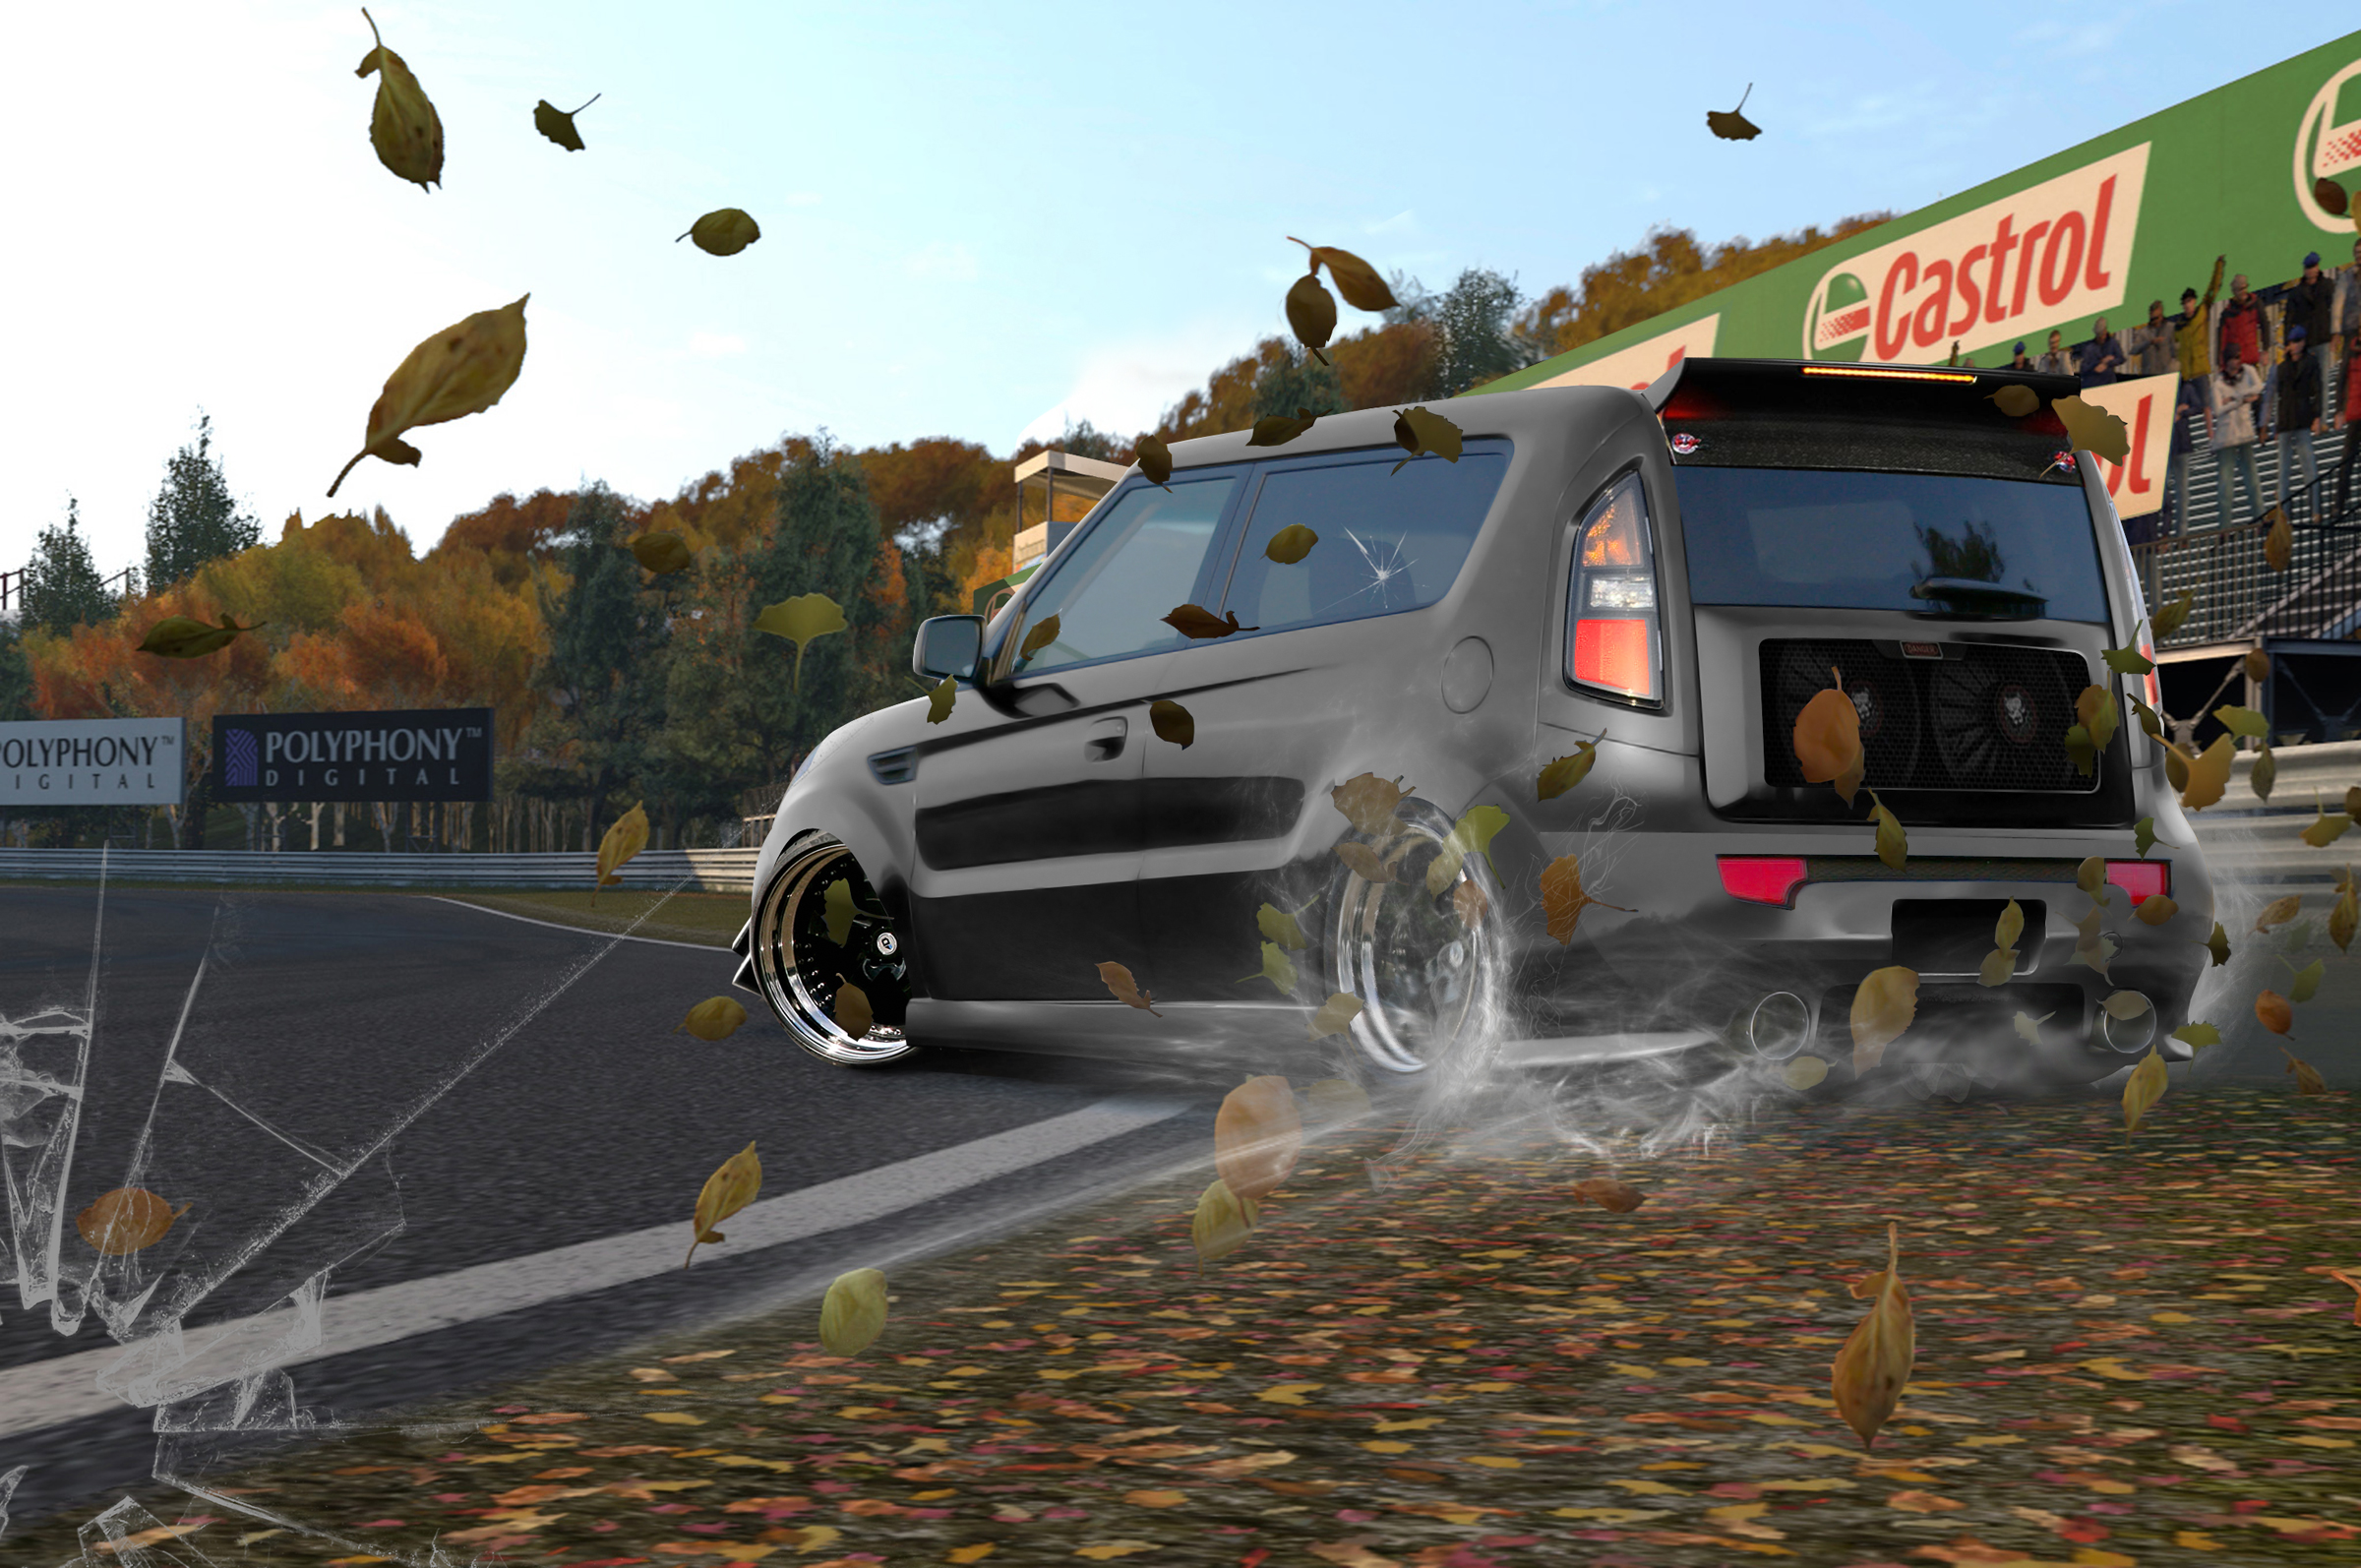 Gran-Turismo-6-Screen-Shot-Nissan-GT-R-race-car-in-leaves